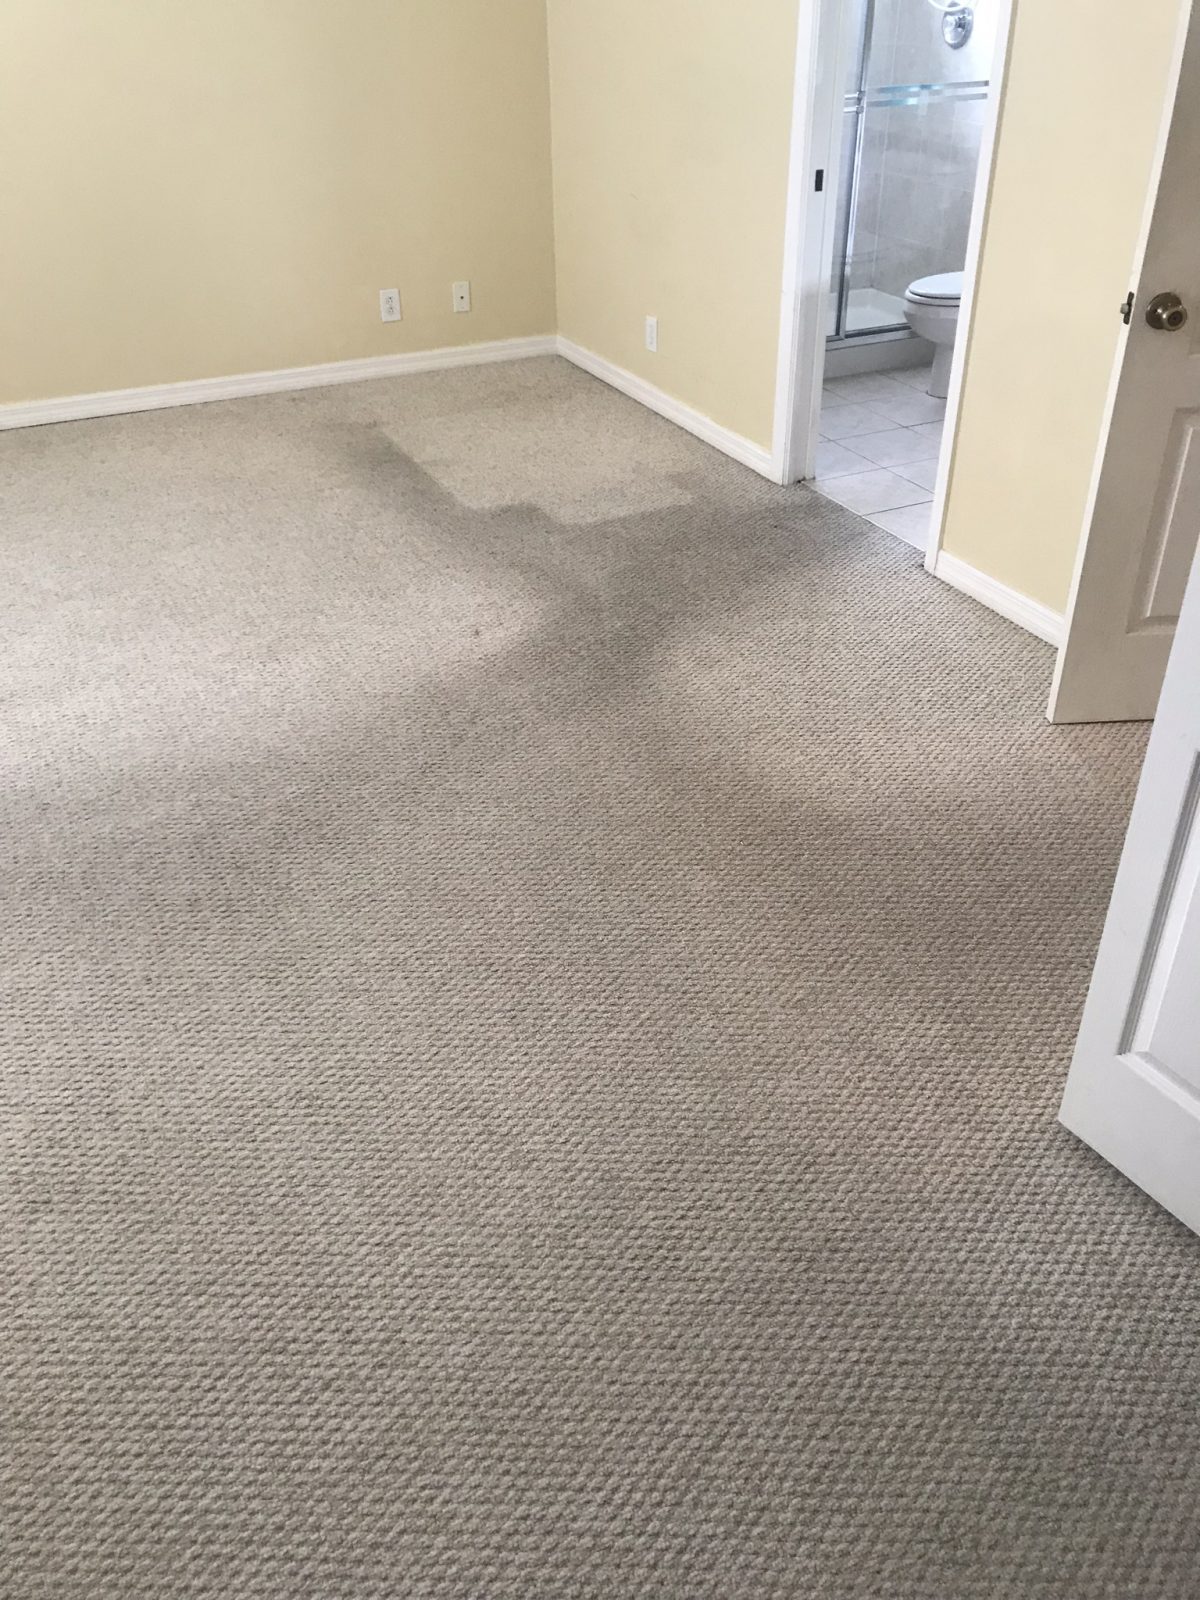 Professional Carpet Cleaning Clearwater Florida by Howards Cleaning Service